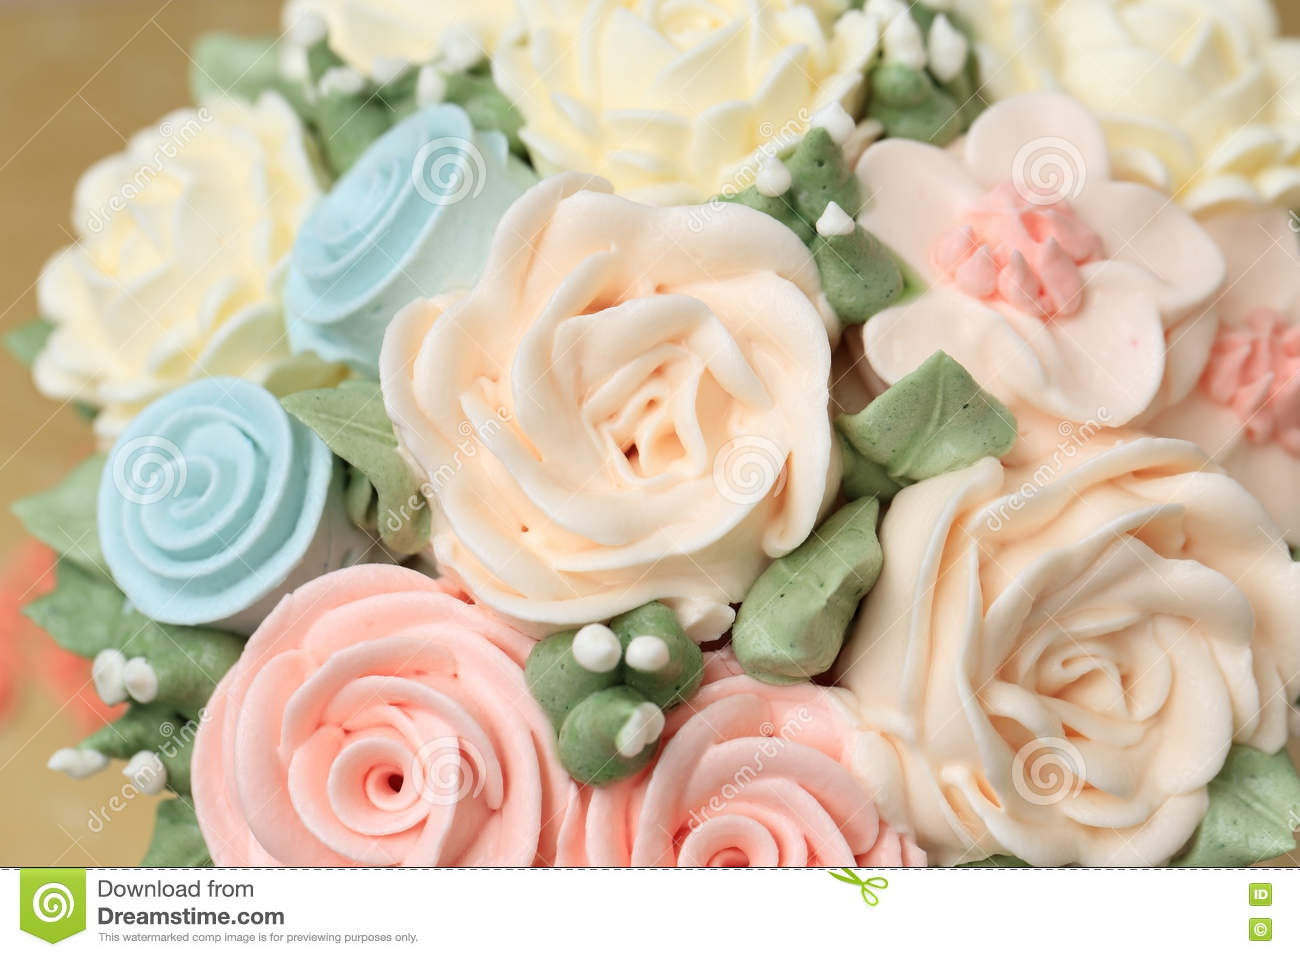 Wedding or birthday cake decorated with flowers made from cream wedding or birthday cake decorated with flowers made from cream izmirmasajfo